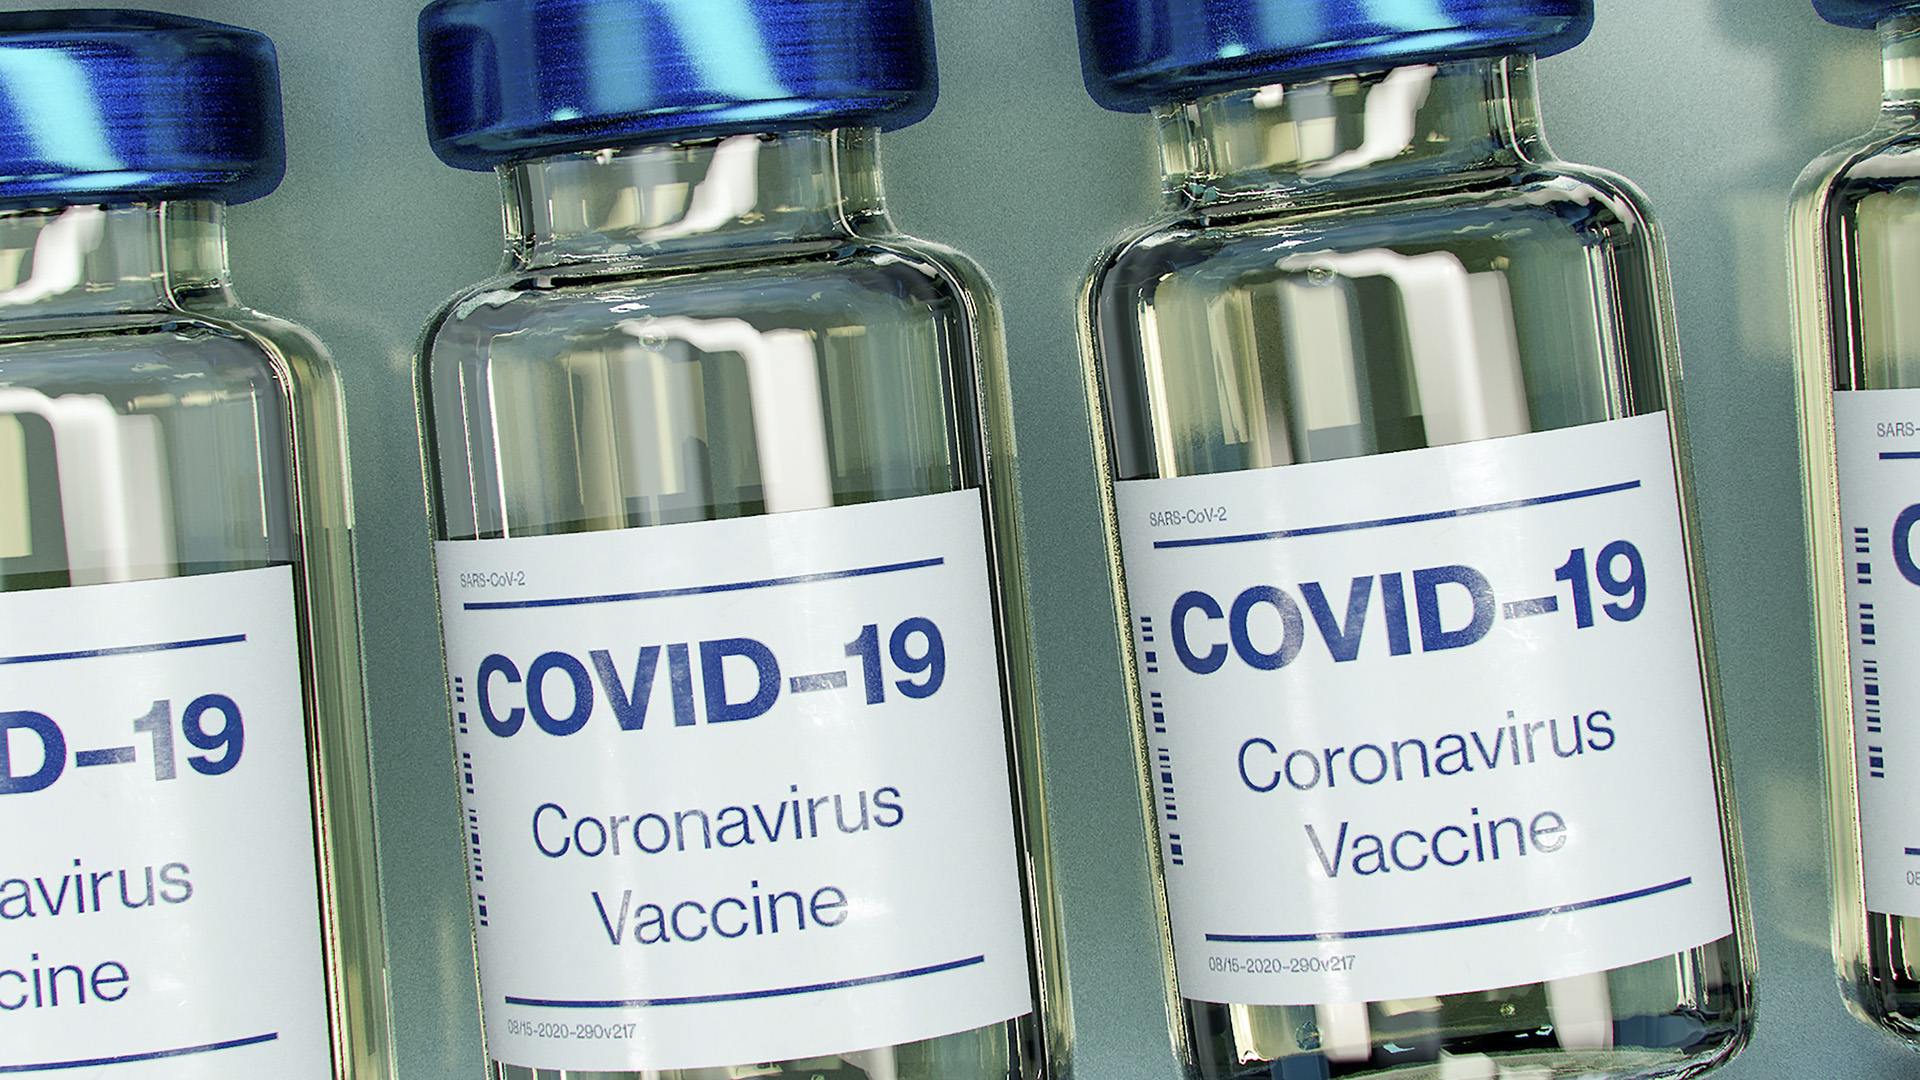 Hundreds In Indian Housing Complex Get 'Fake' Covid-19 Shots